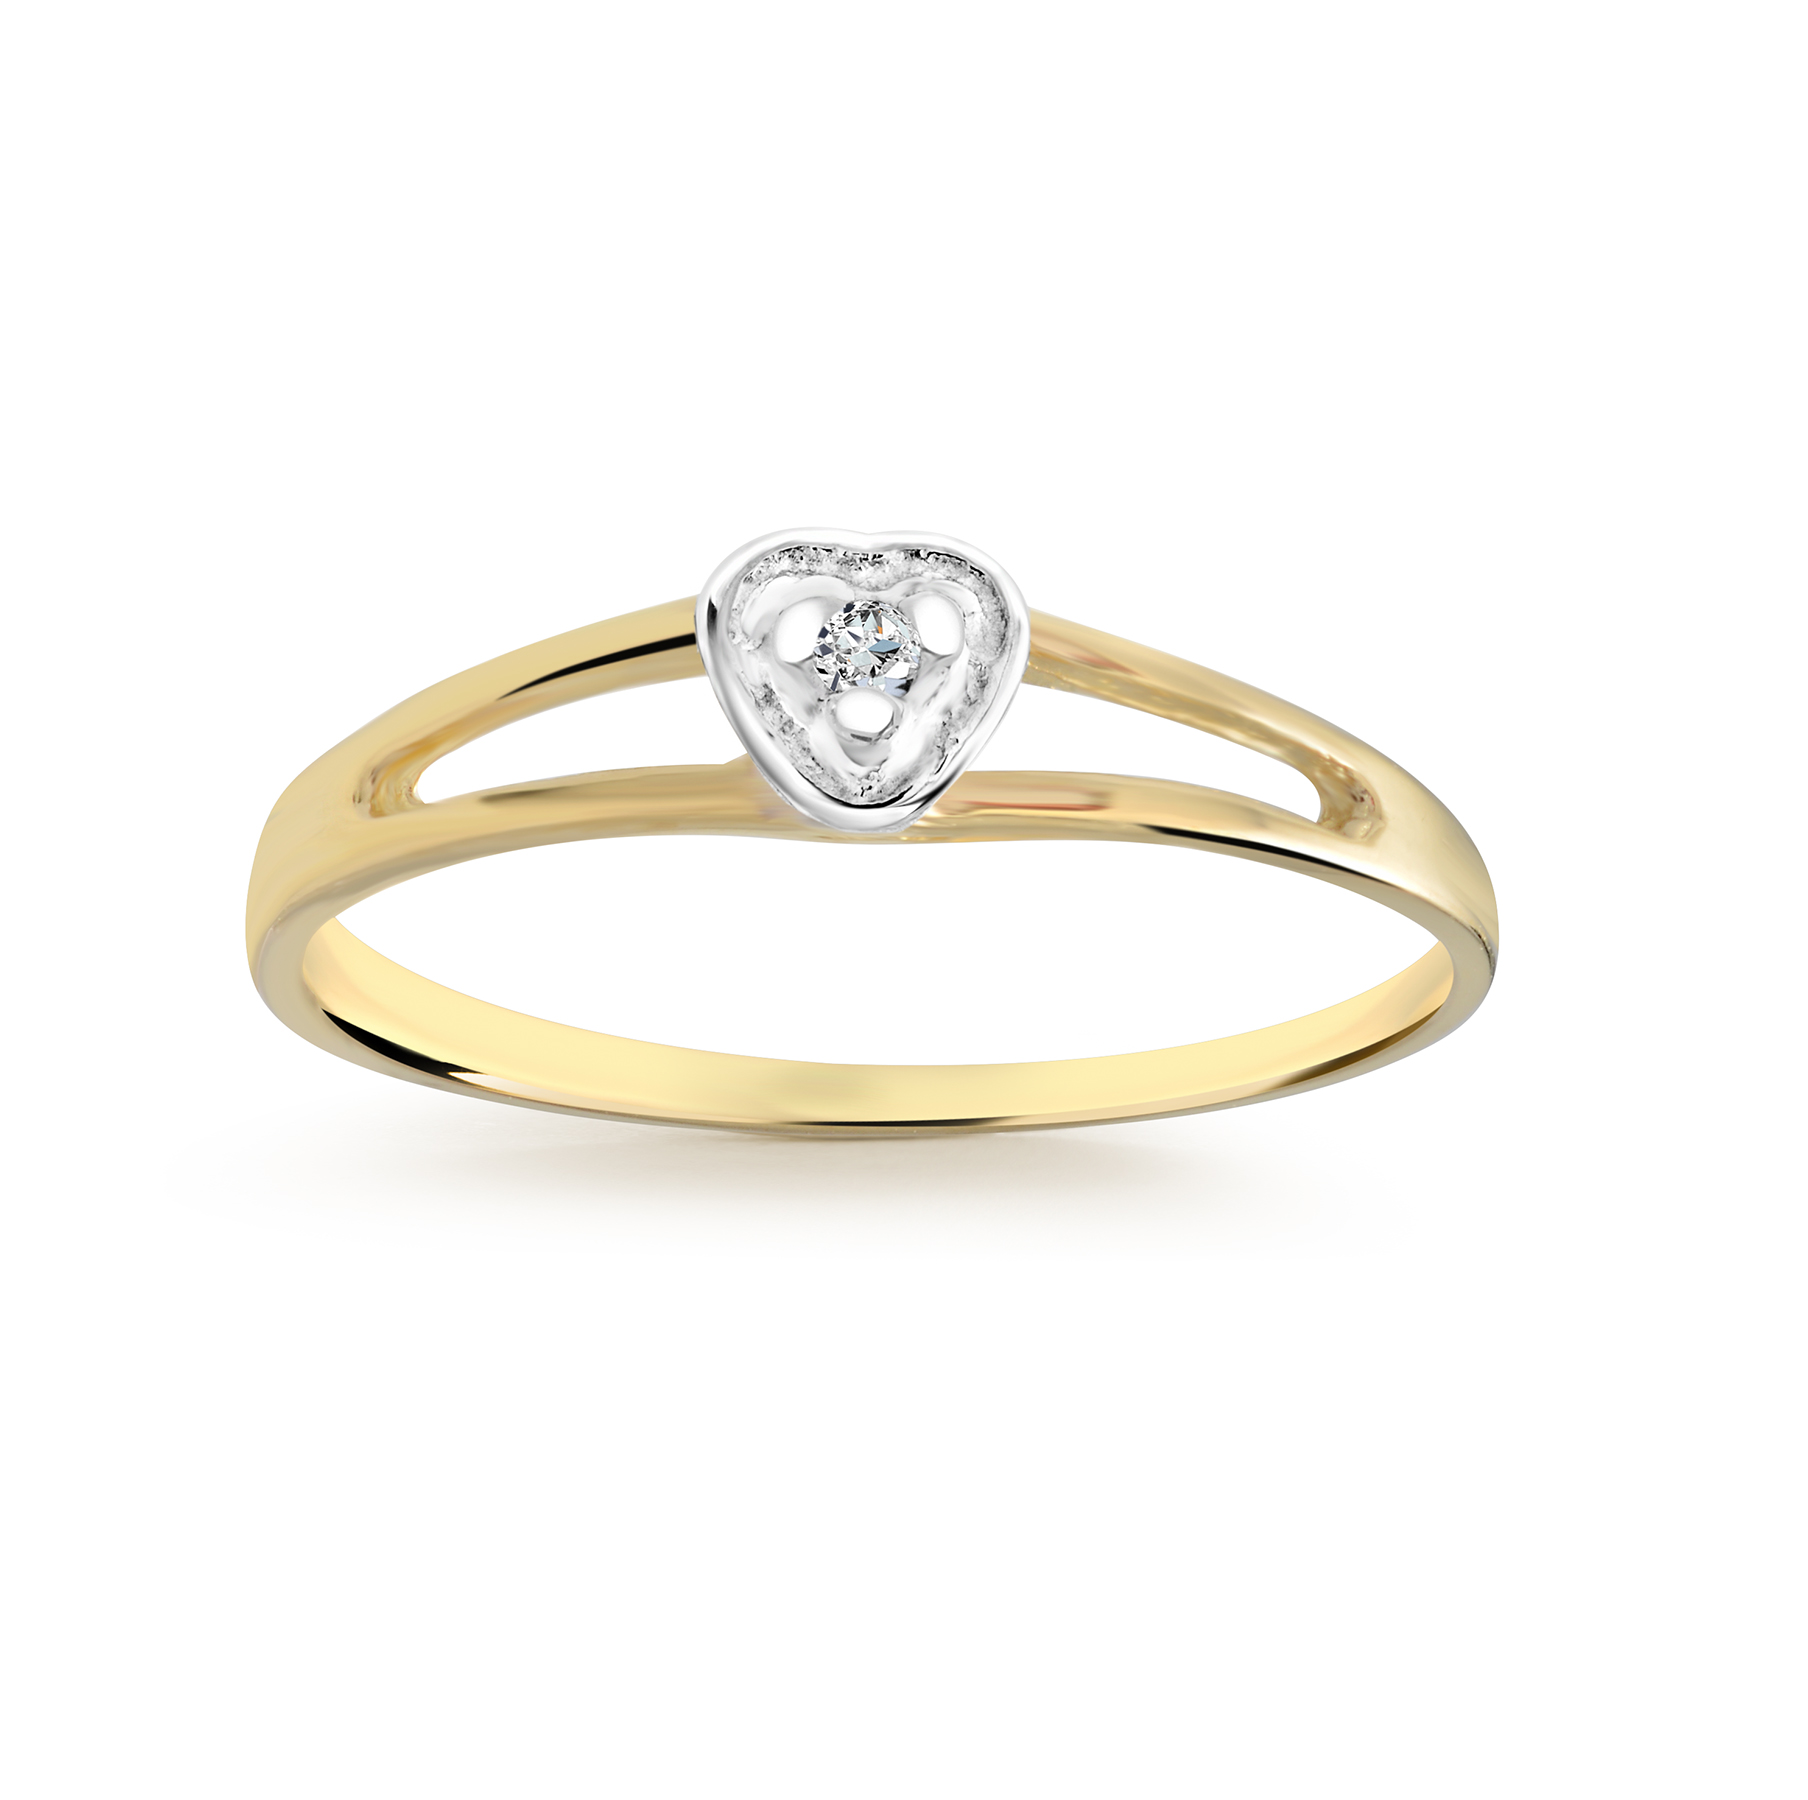 Baby's heart diamond ring in 10K yellow Gold